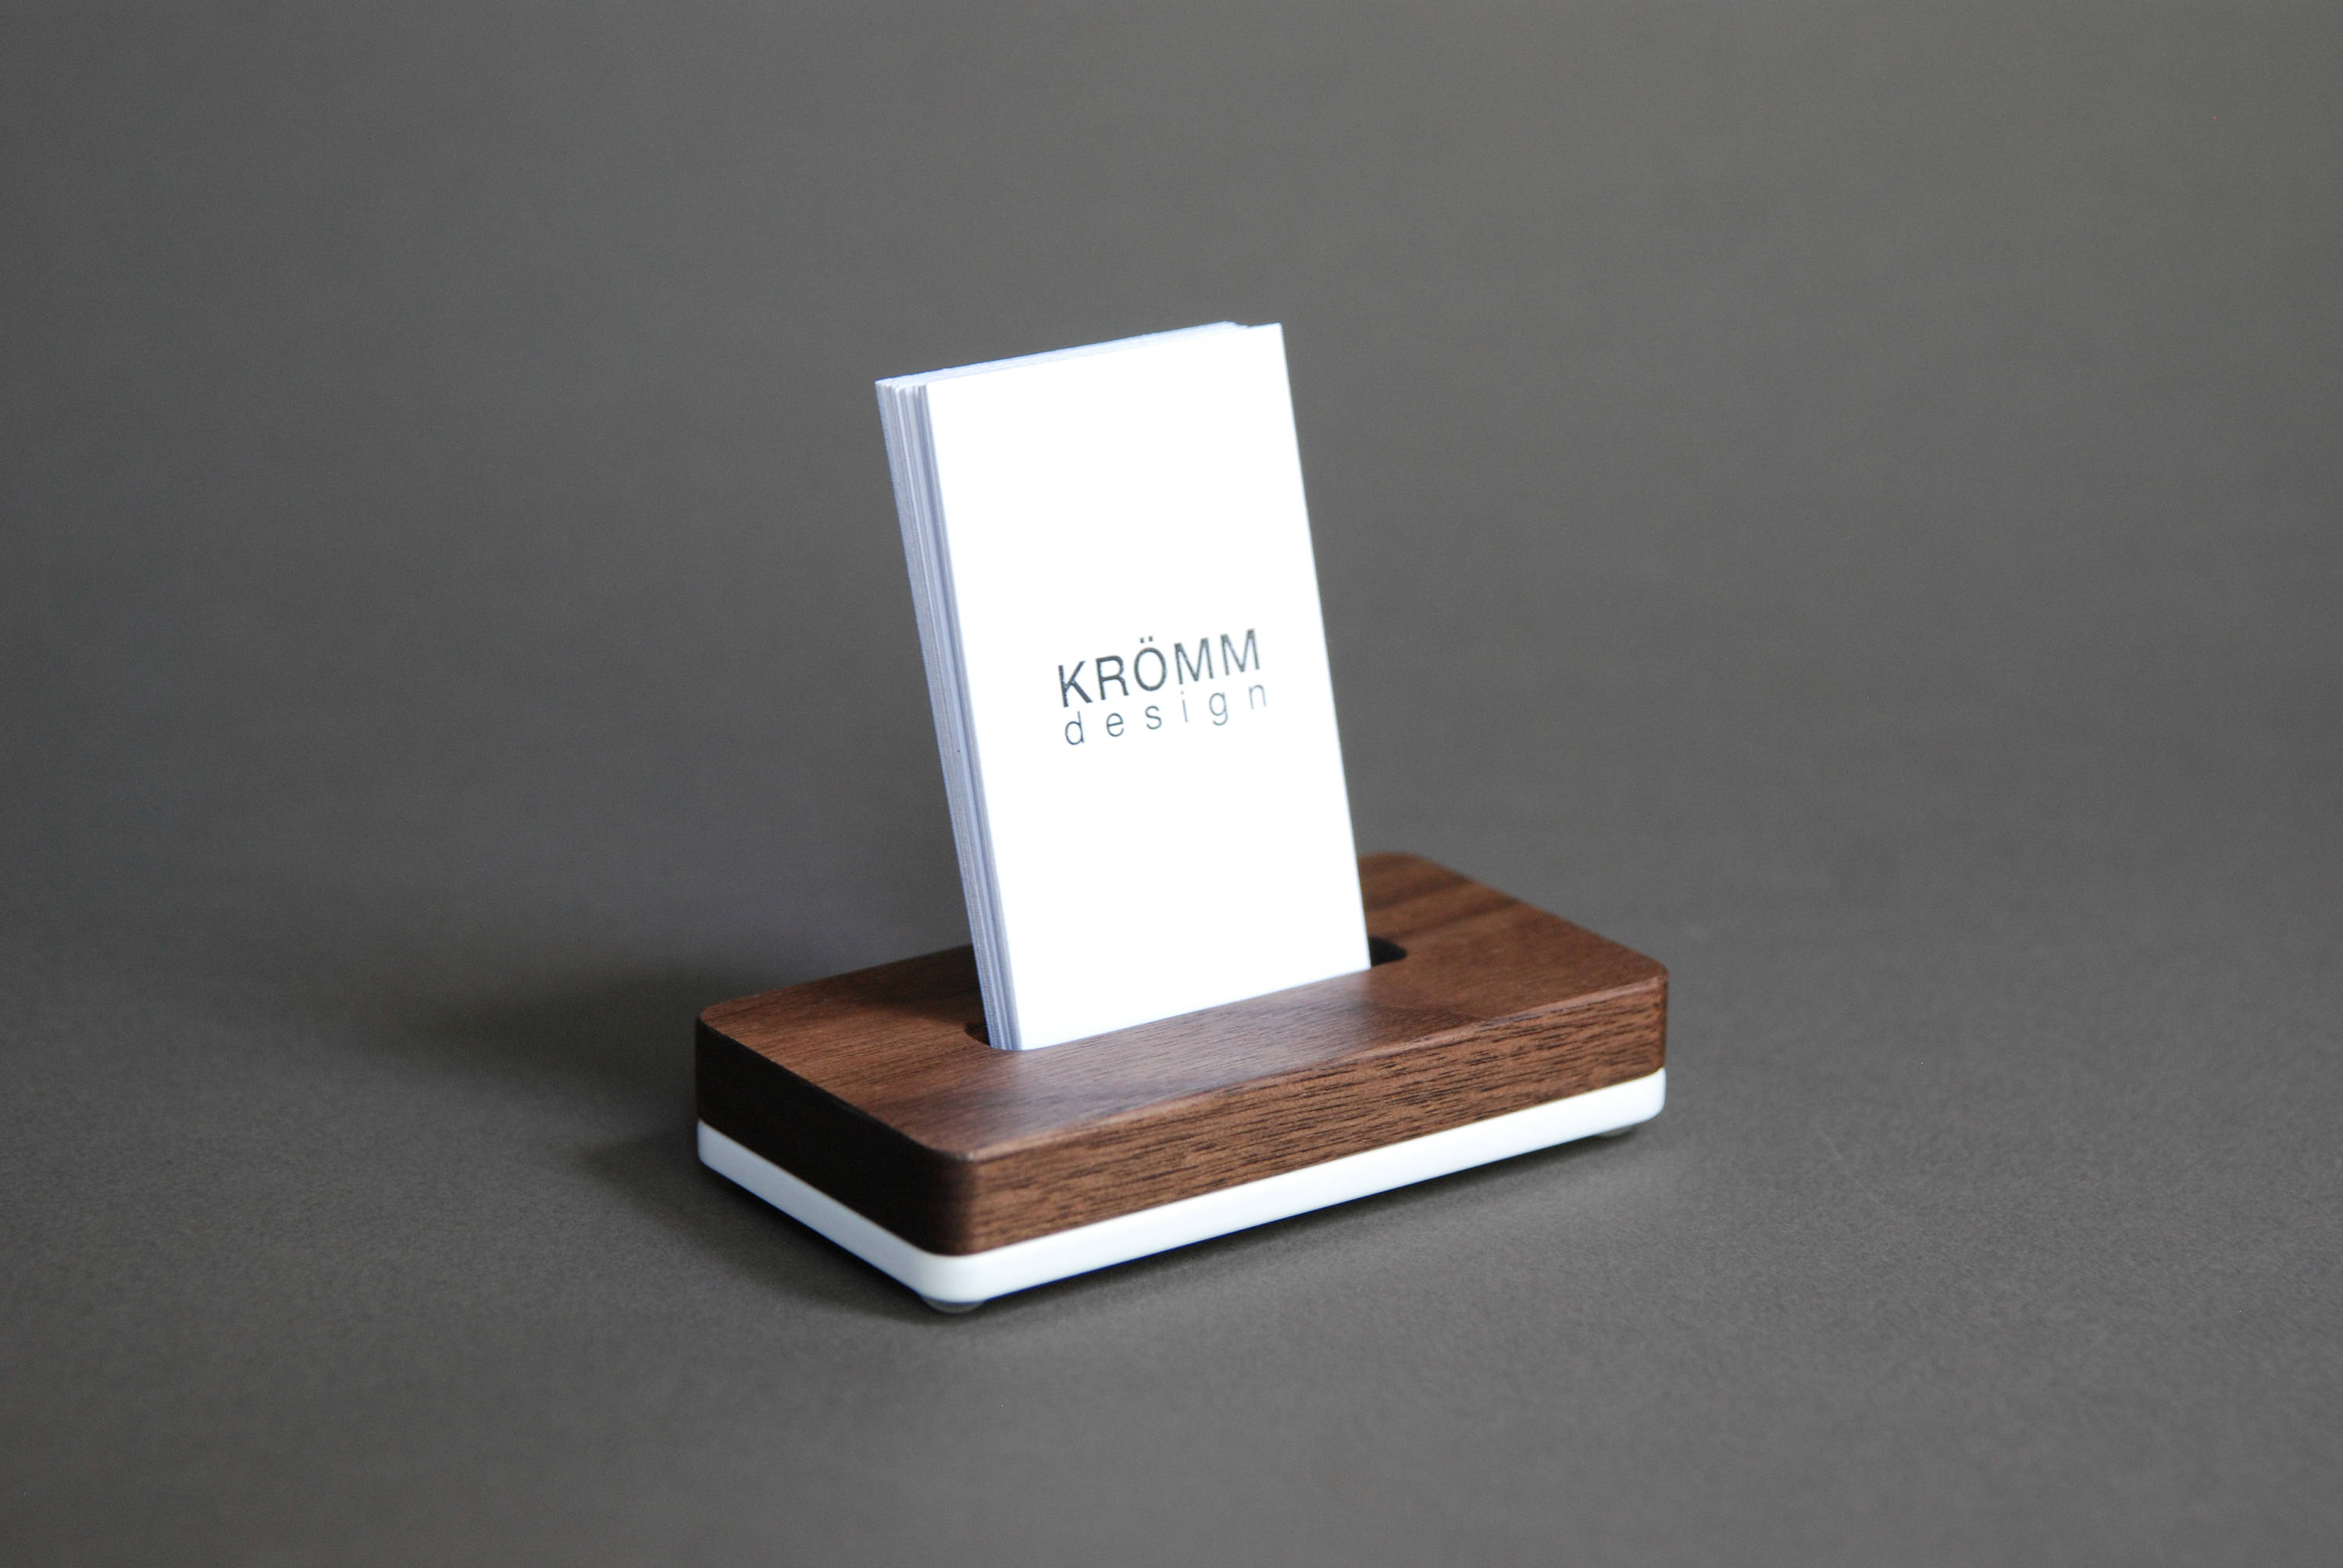 Vertical moo business card stand business card display wood card vertical moo business card stand business card display wood card holder walnut wood and acrylic single vertical card stand reheart Gallery